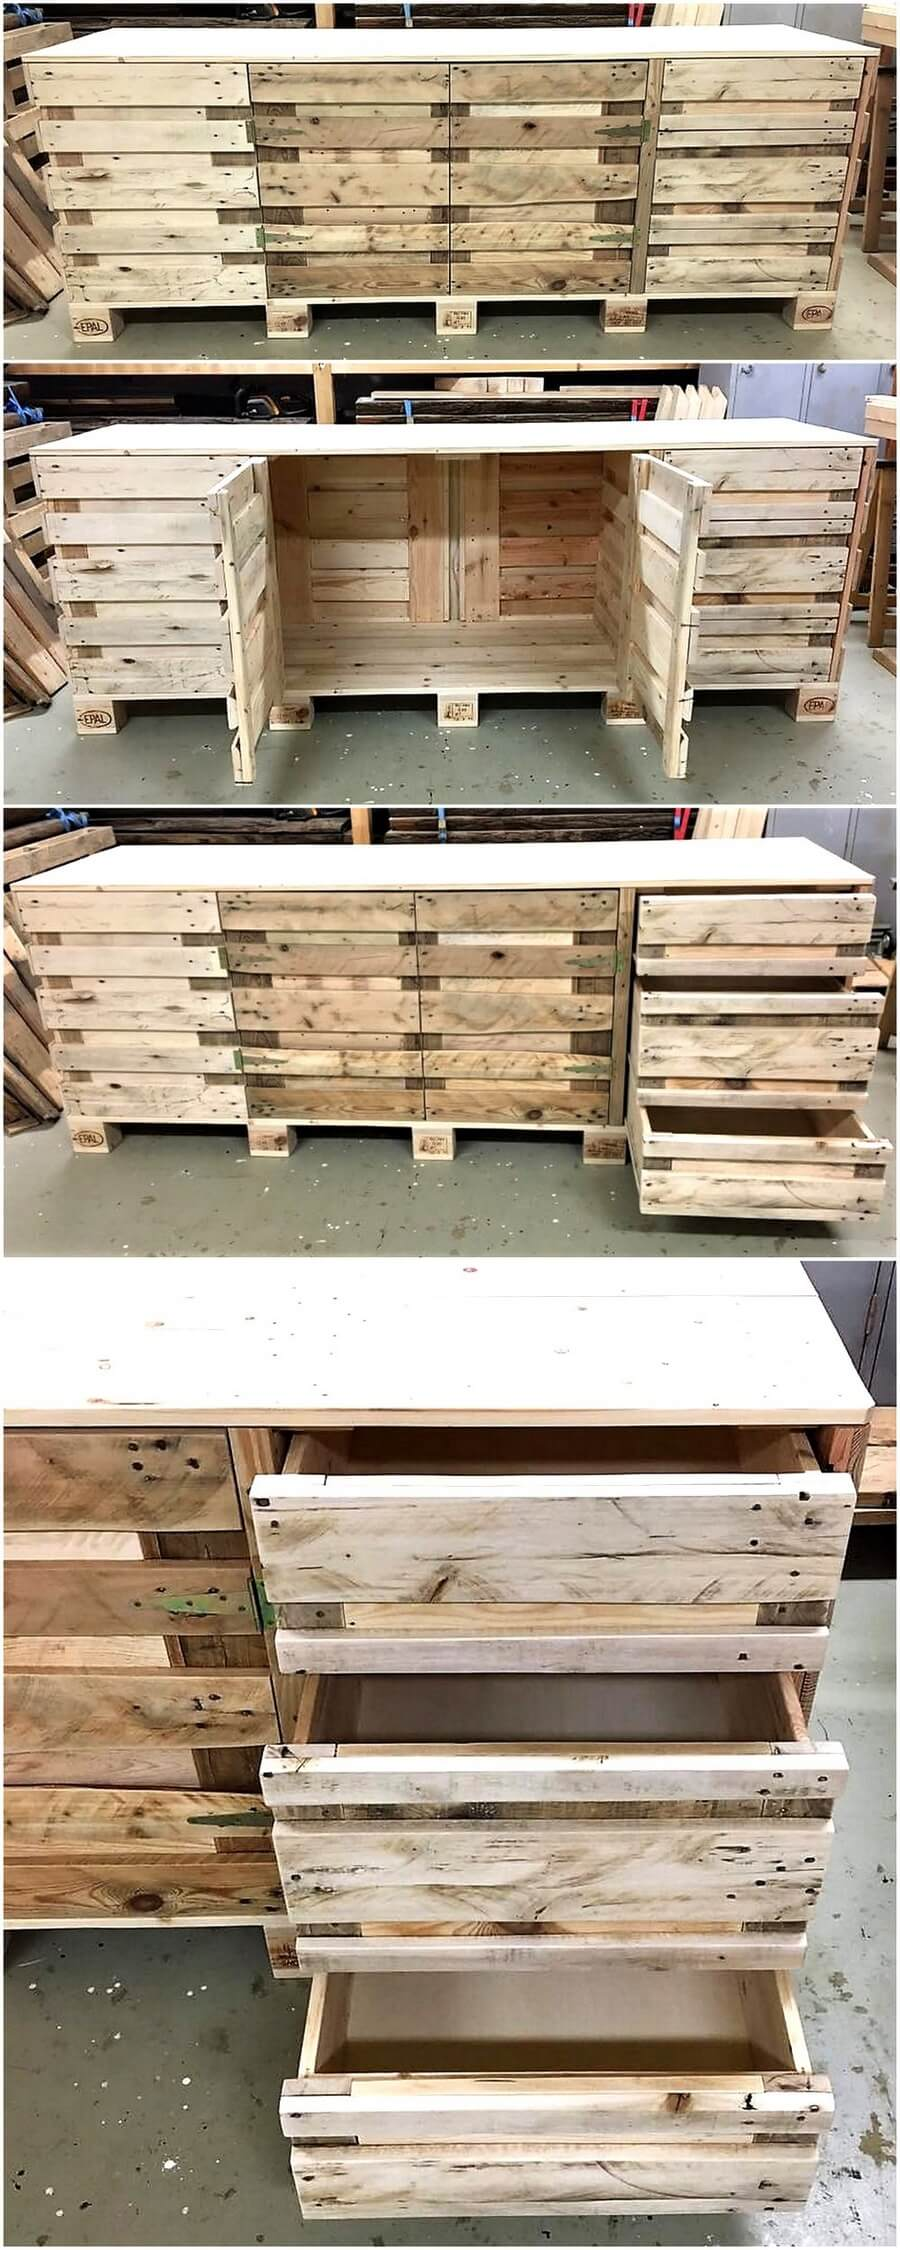 repurposed wood pallets kitchen counter table kitchen counter table Repurposed Wood Pallets Kitchen Counter Table